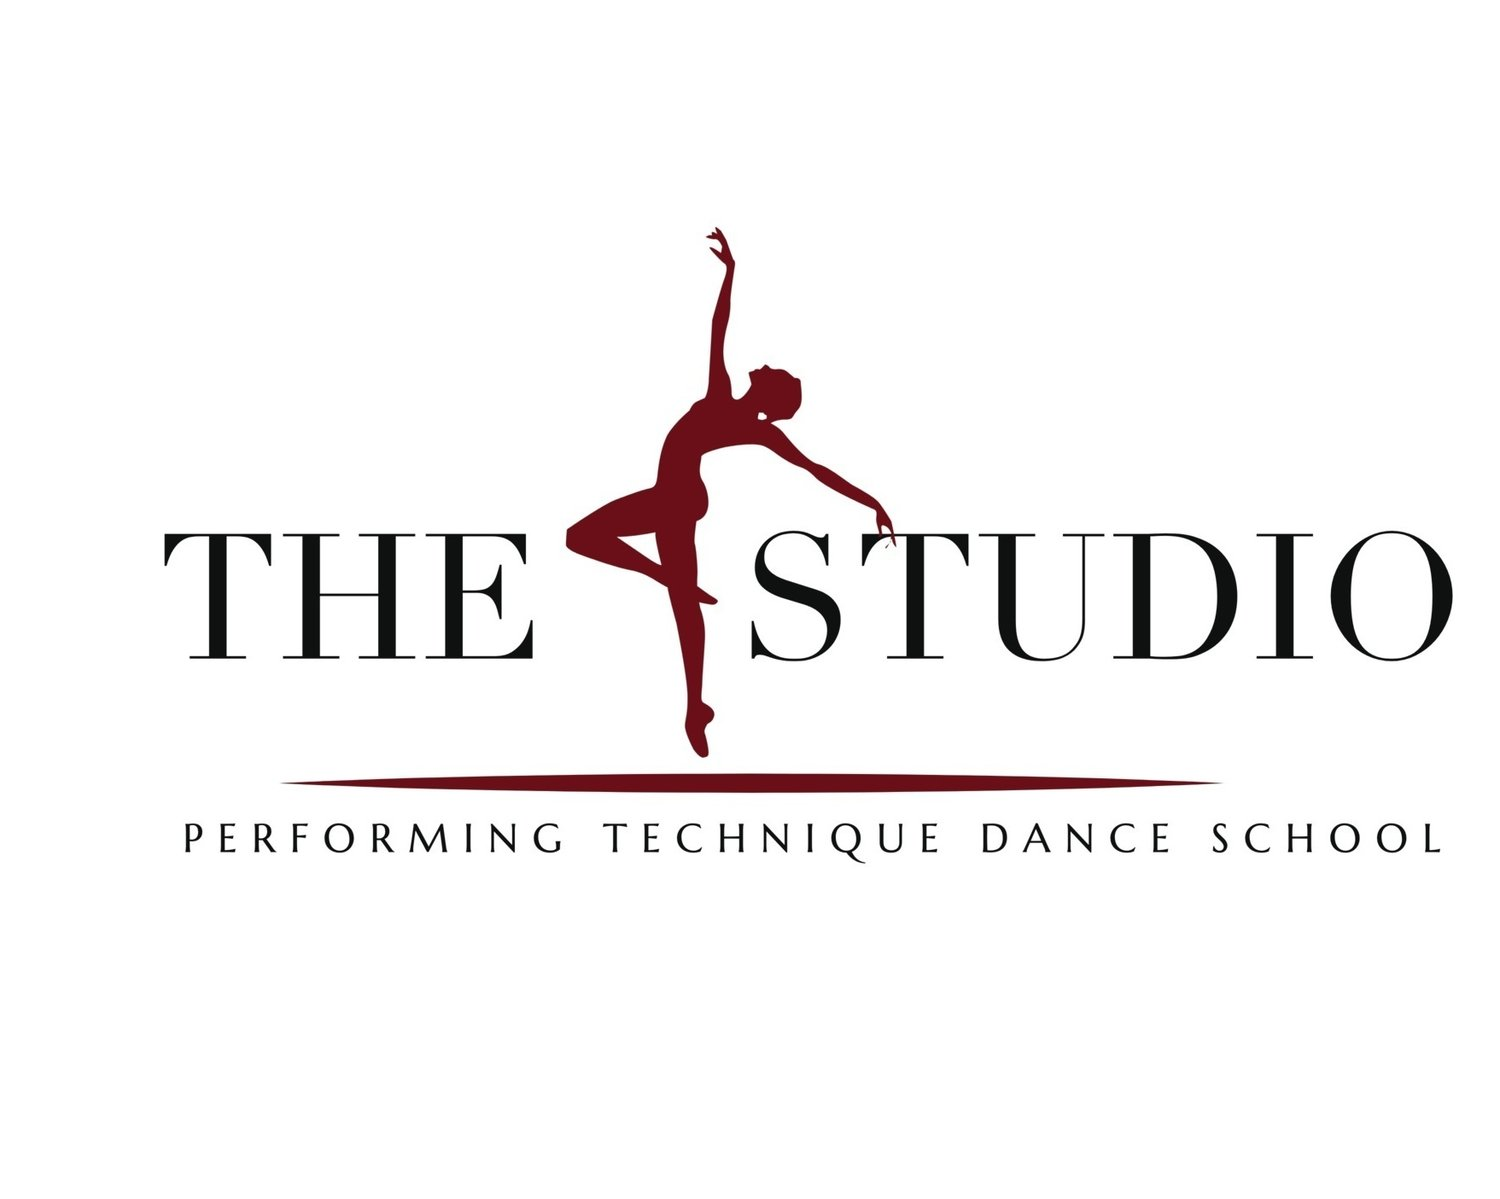 The Studio Performing Technique Dance School